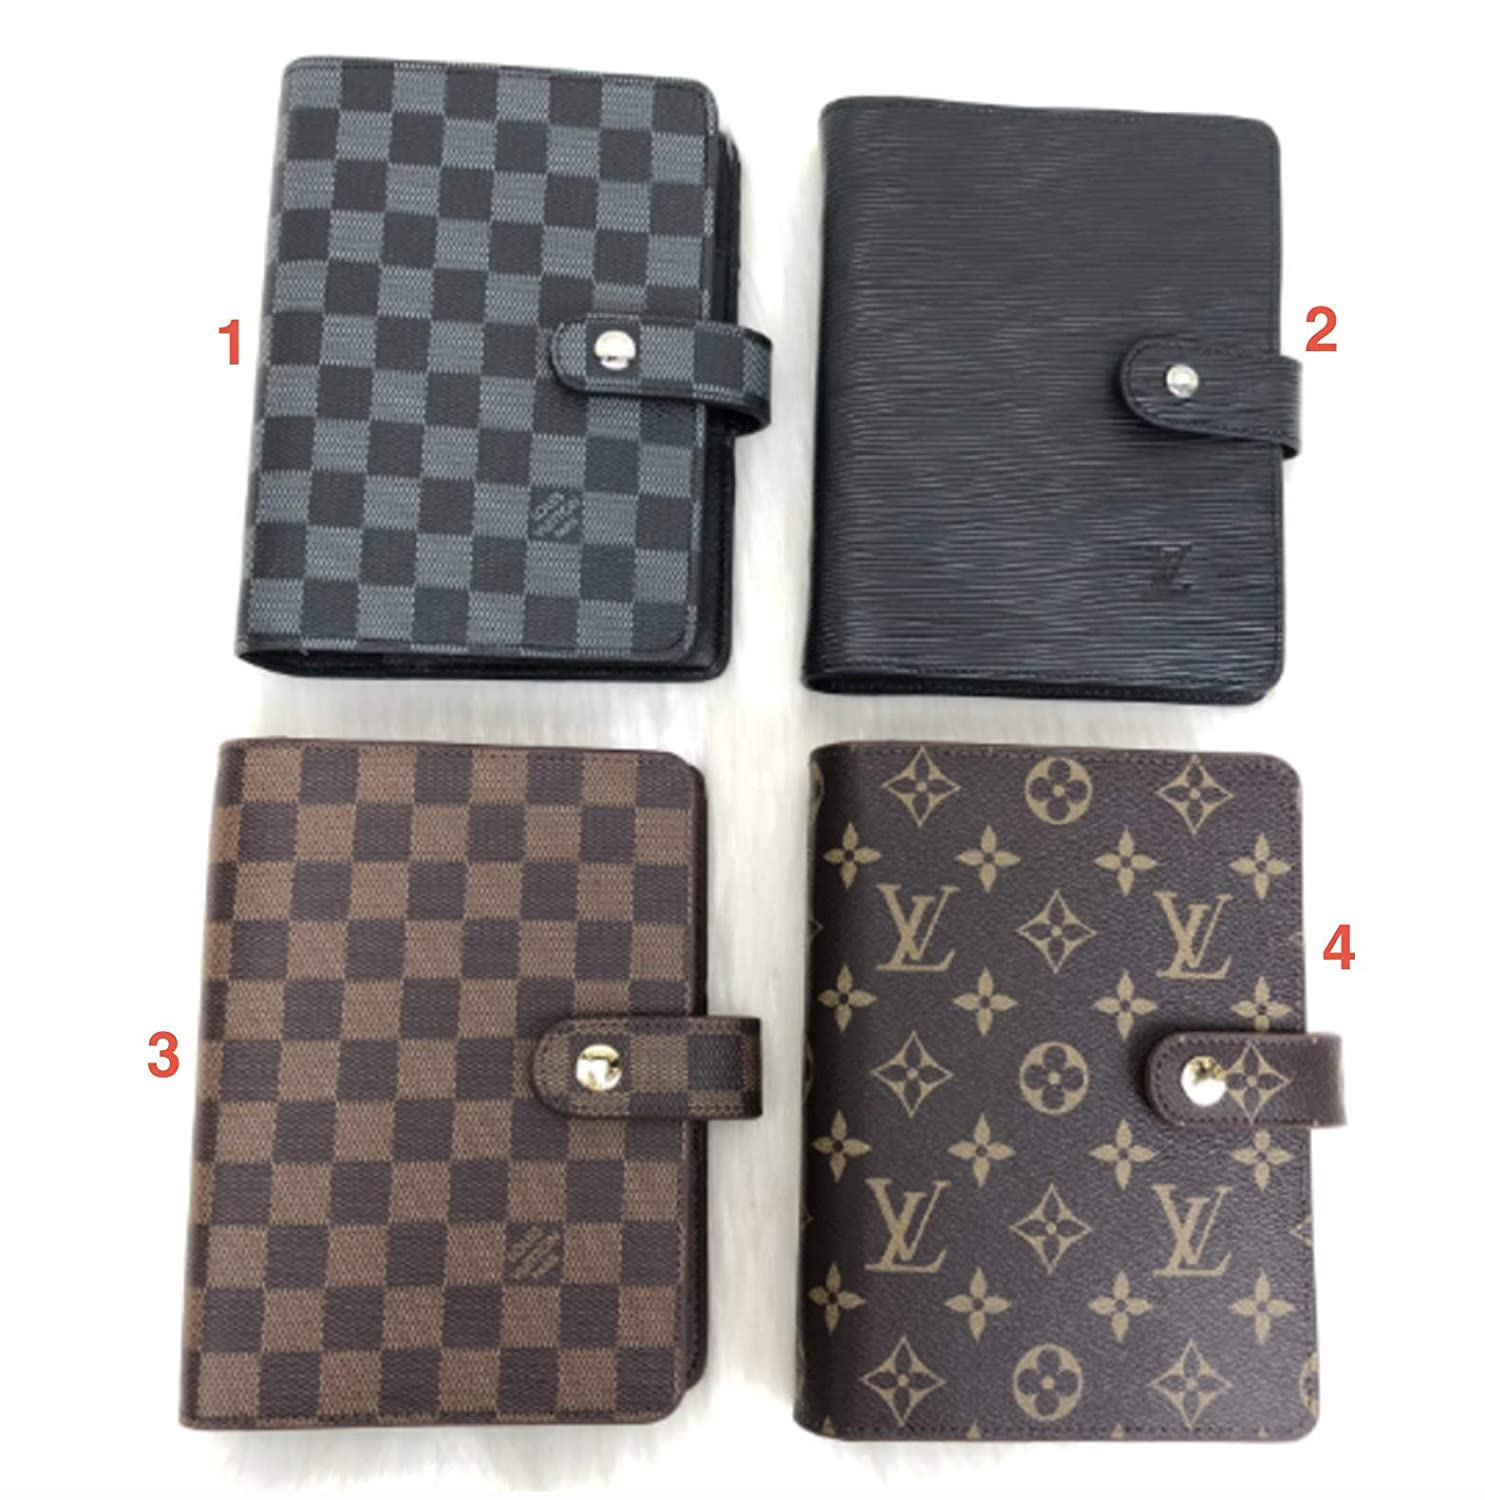 Amazon.com: Louis Vuitton Leather Agenda Book Cover HandMade ...